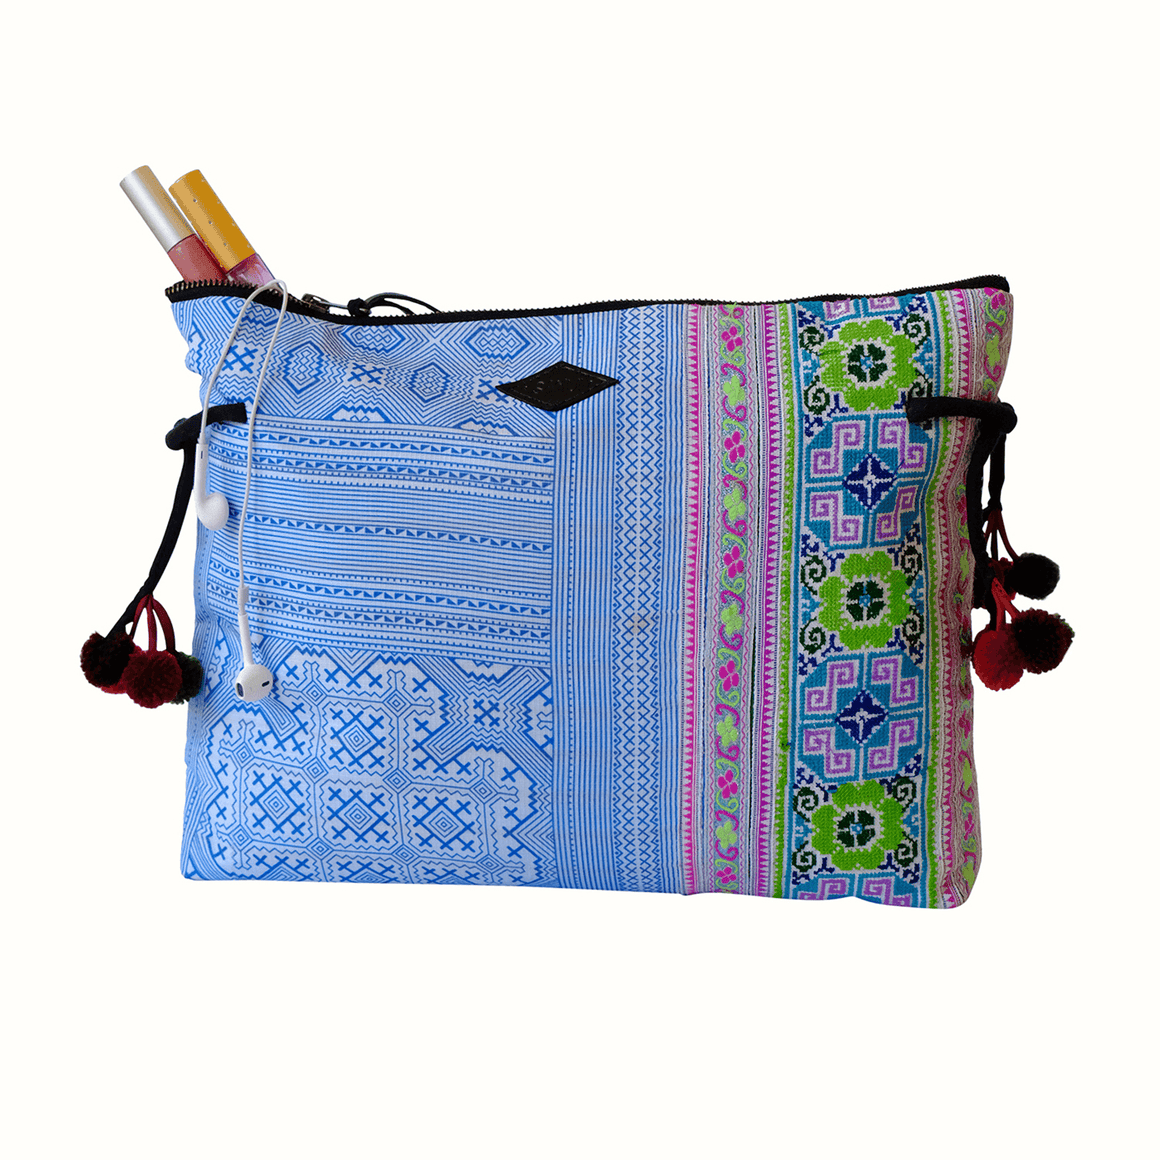 Samui Bags Ocean Breeze Clutch Handmade Bag Thailand